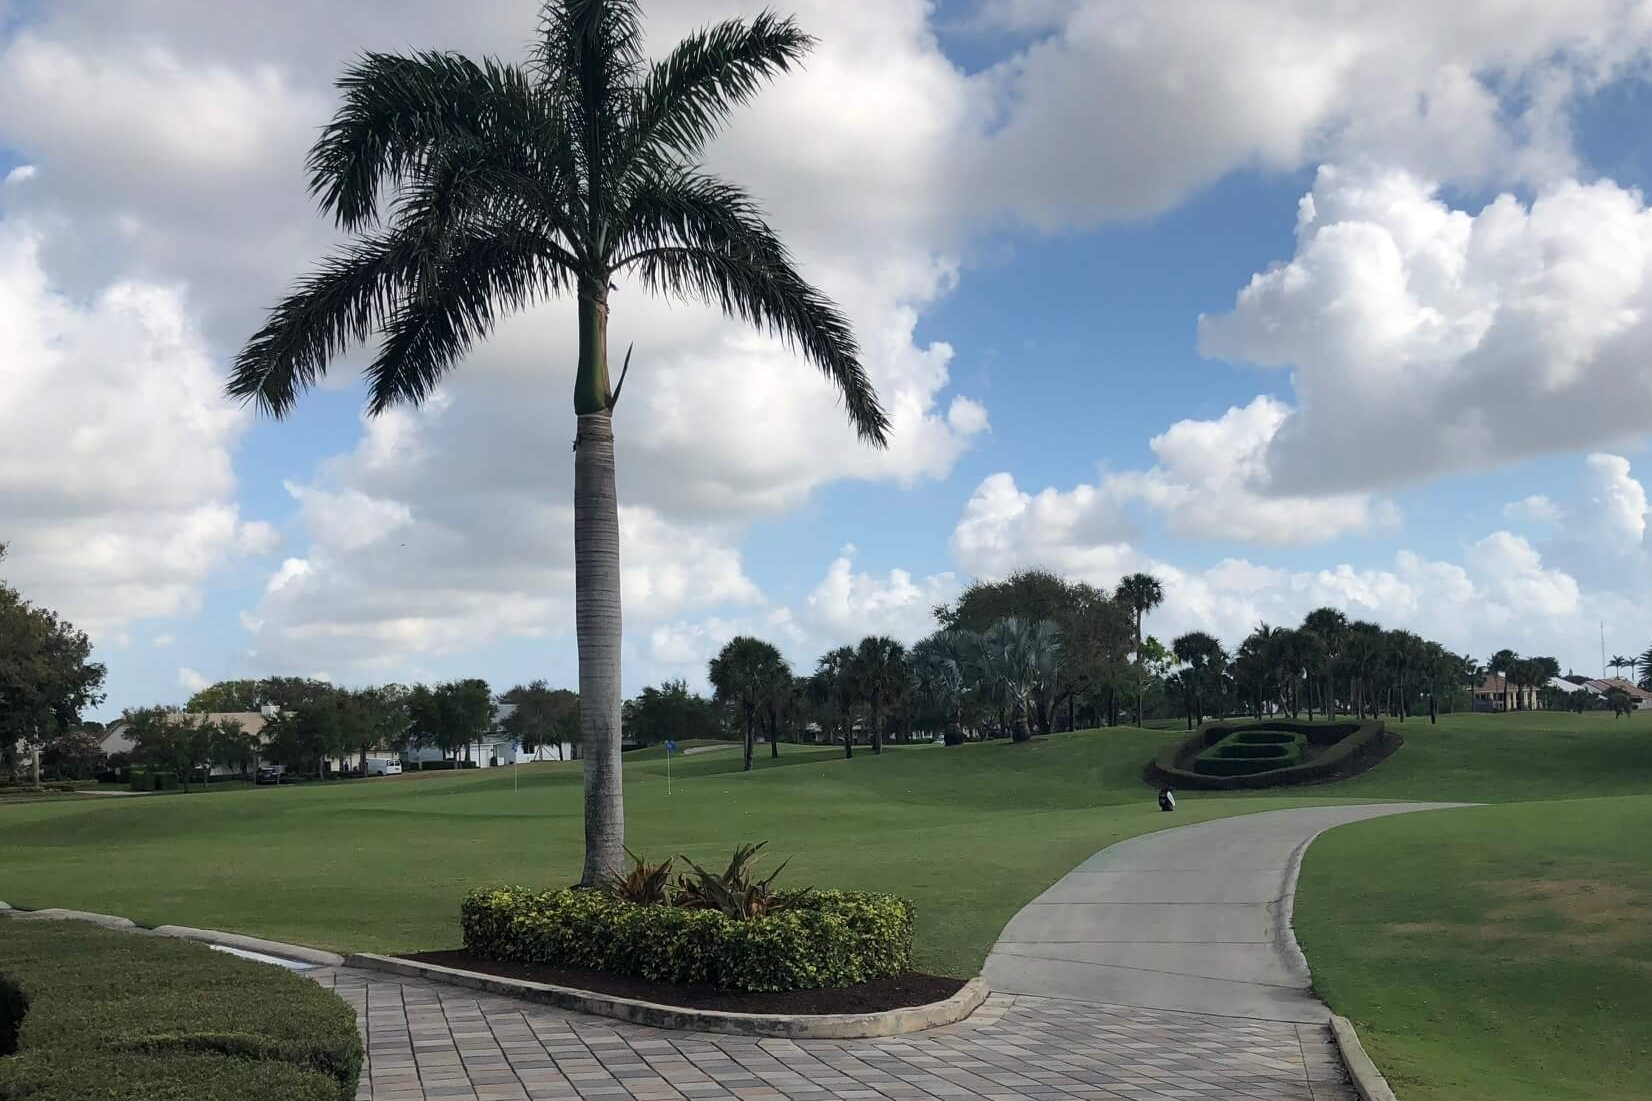 - Bocaire Country Club, Boca RatonInsite Studio collaborated with golf course architect, Kipp Schulties, on the redesign of a new signature golf course for Bocaire Country Club and its membership. The course was opened in December 2018.